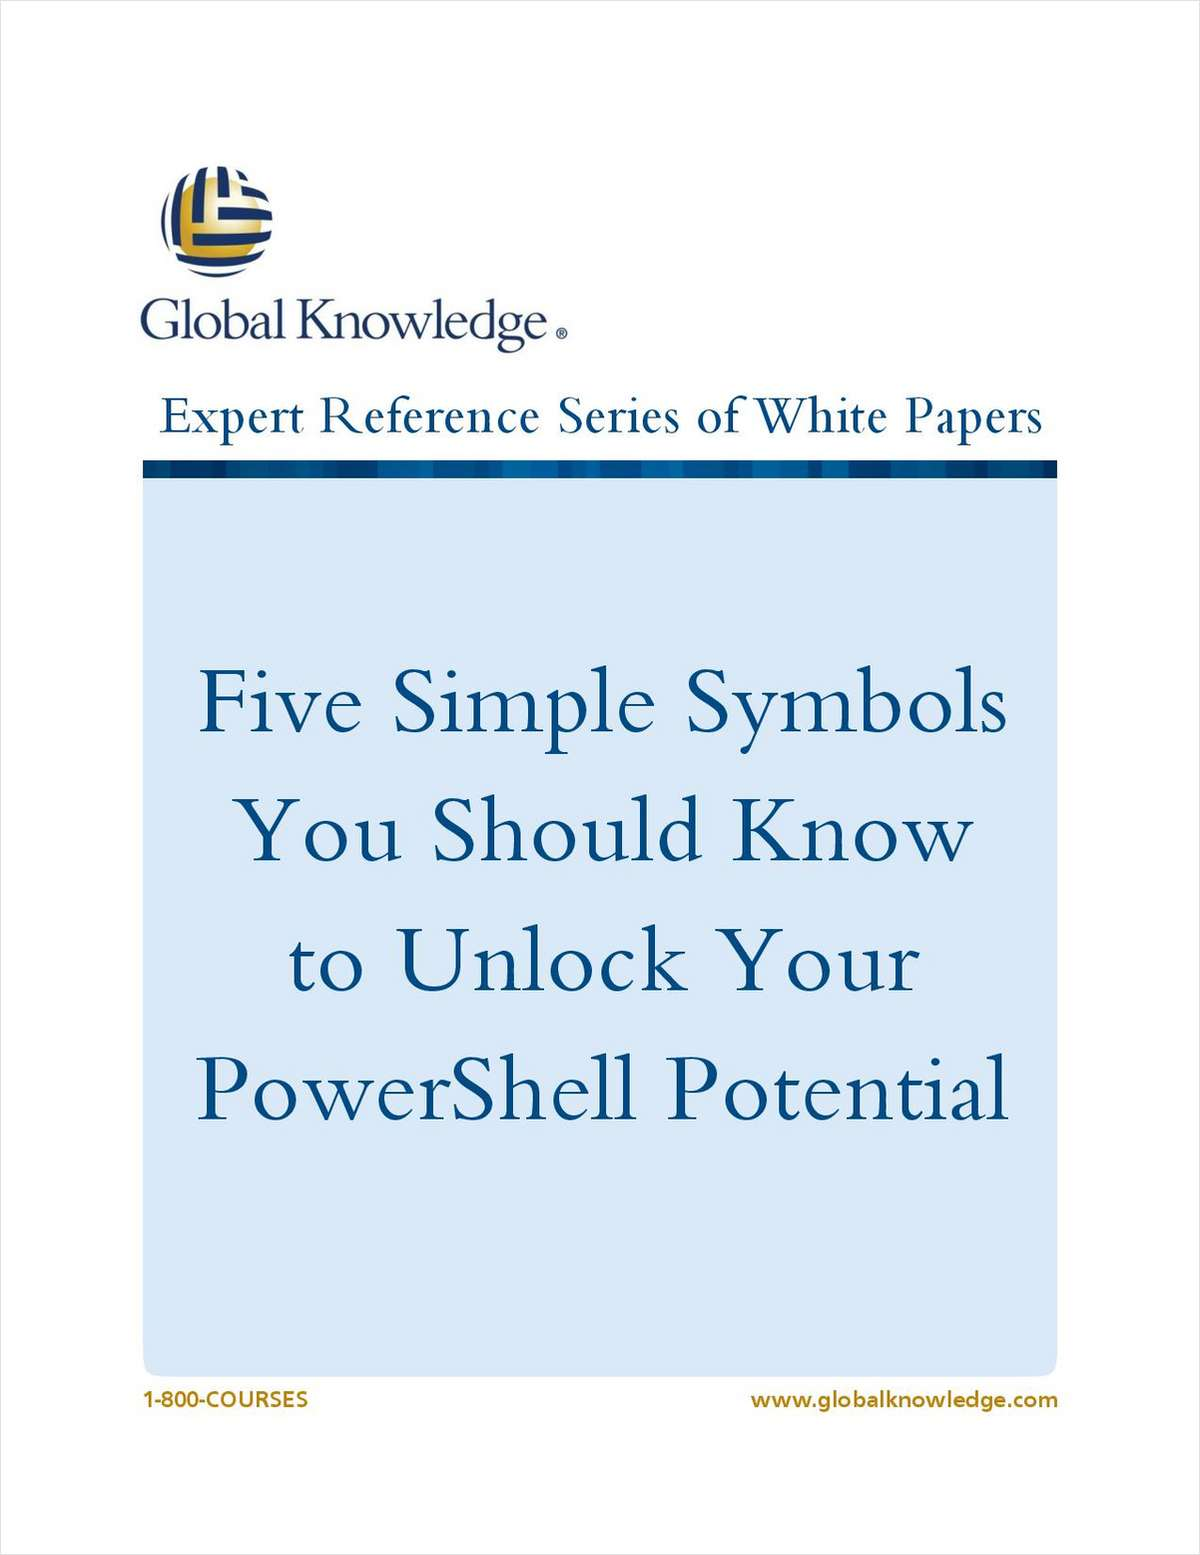 Five Simple Symbols You Should Know to Unlock Your PowerShell Potential